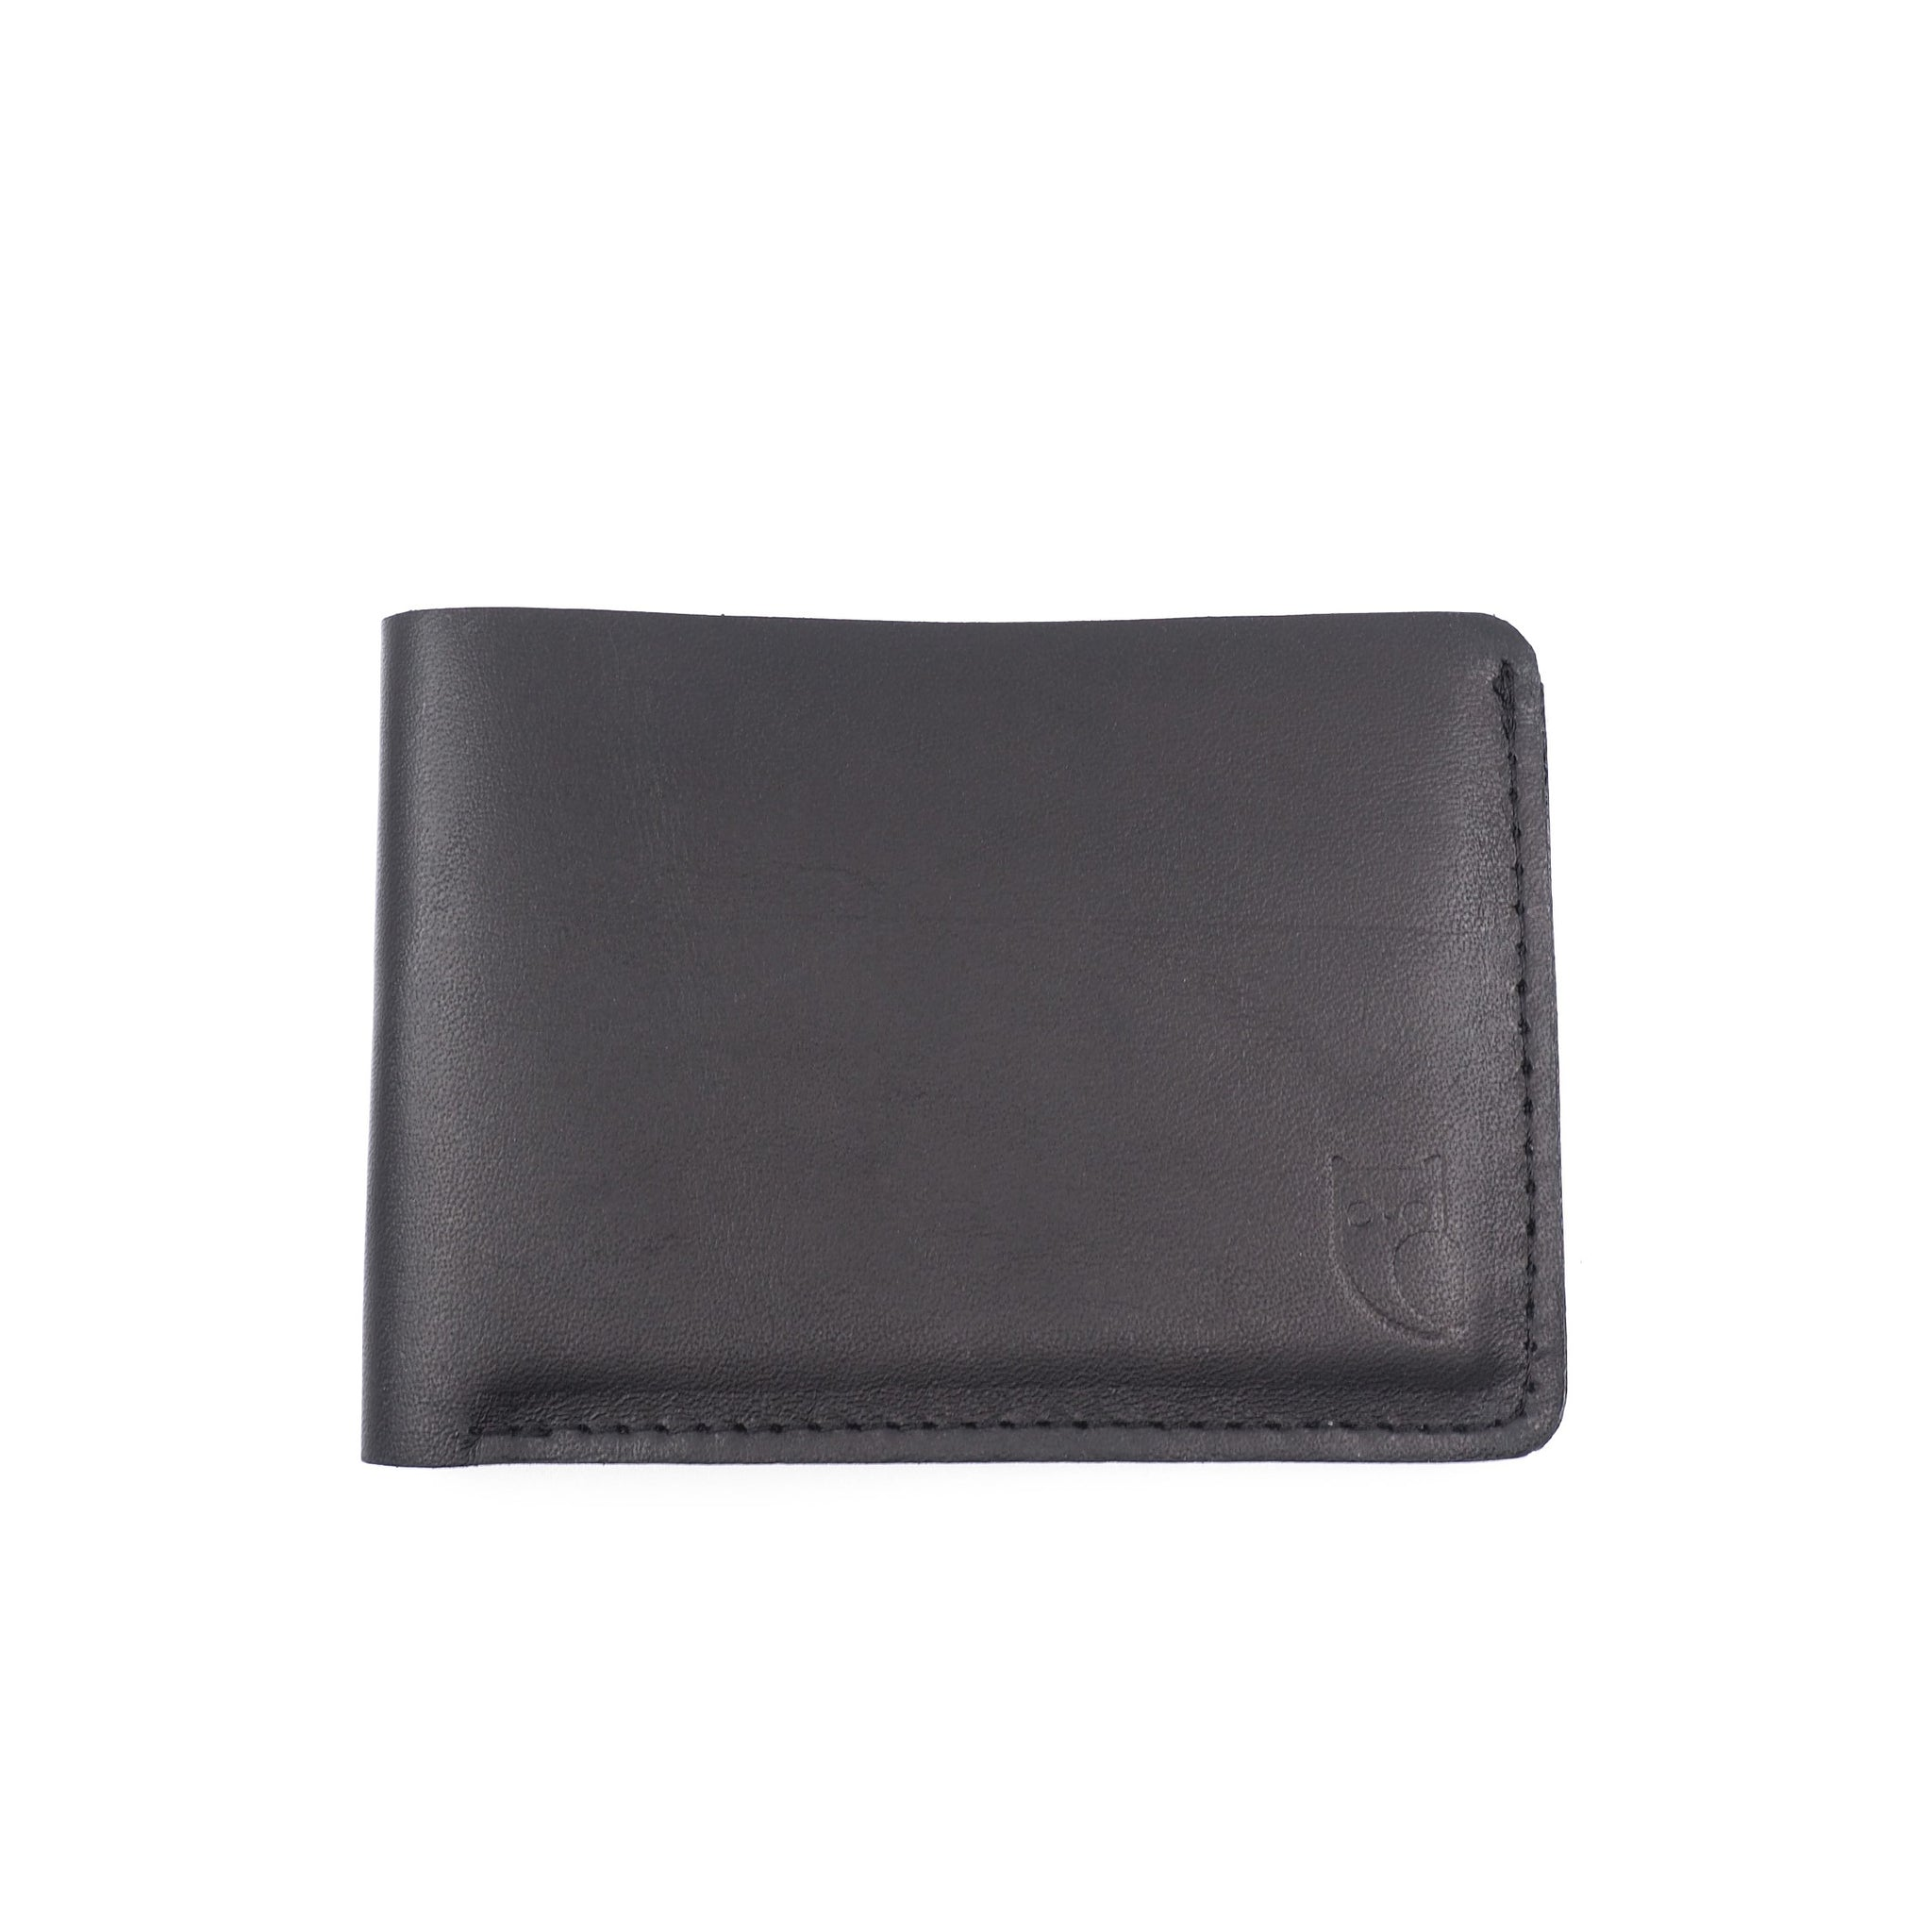 Mr. Big Wallet